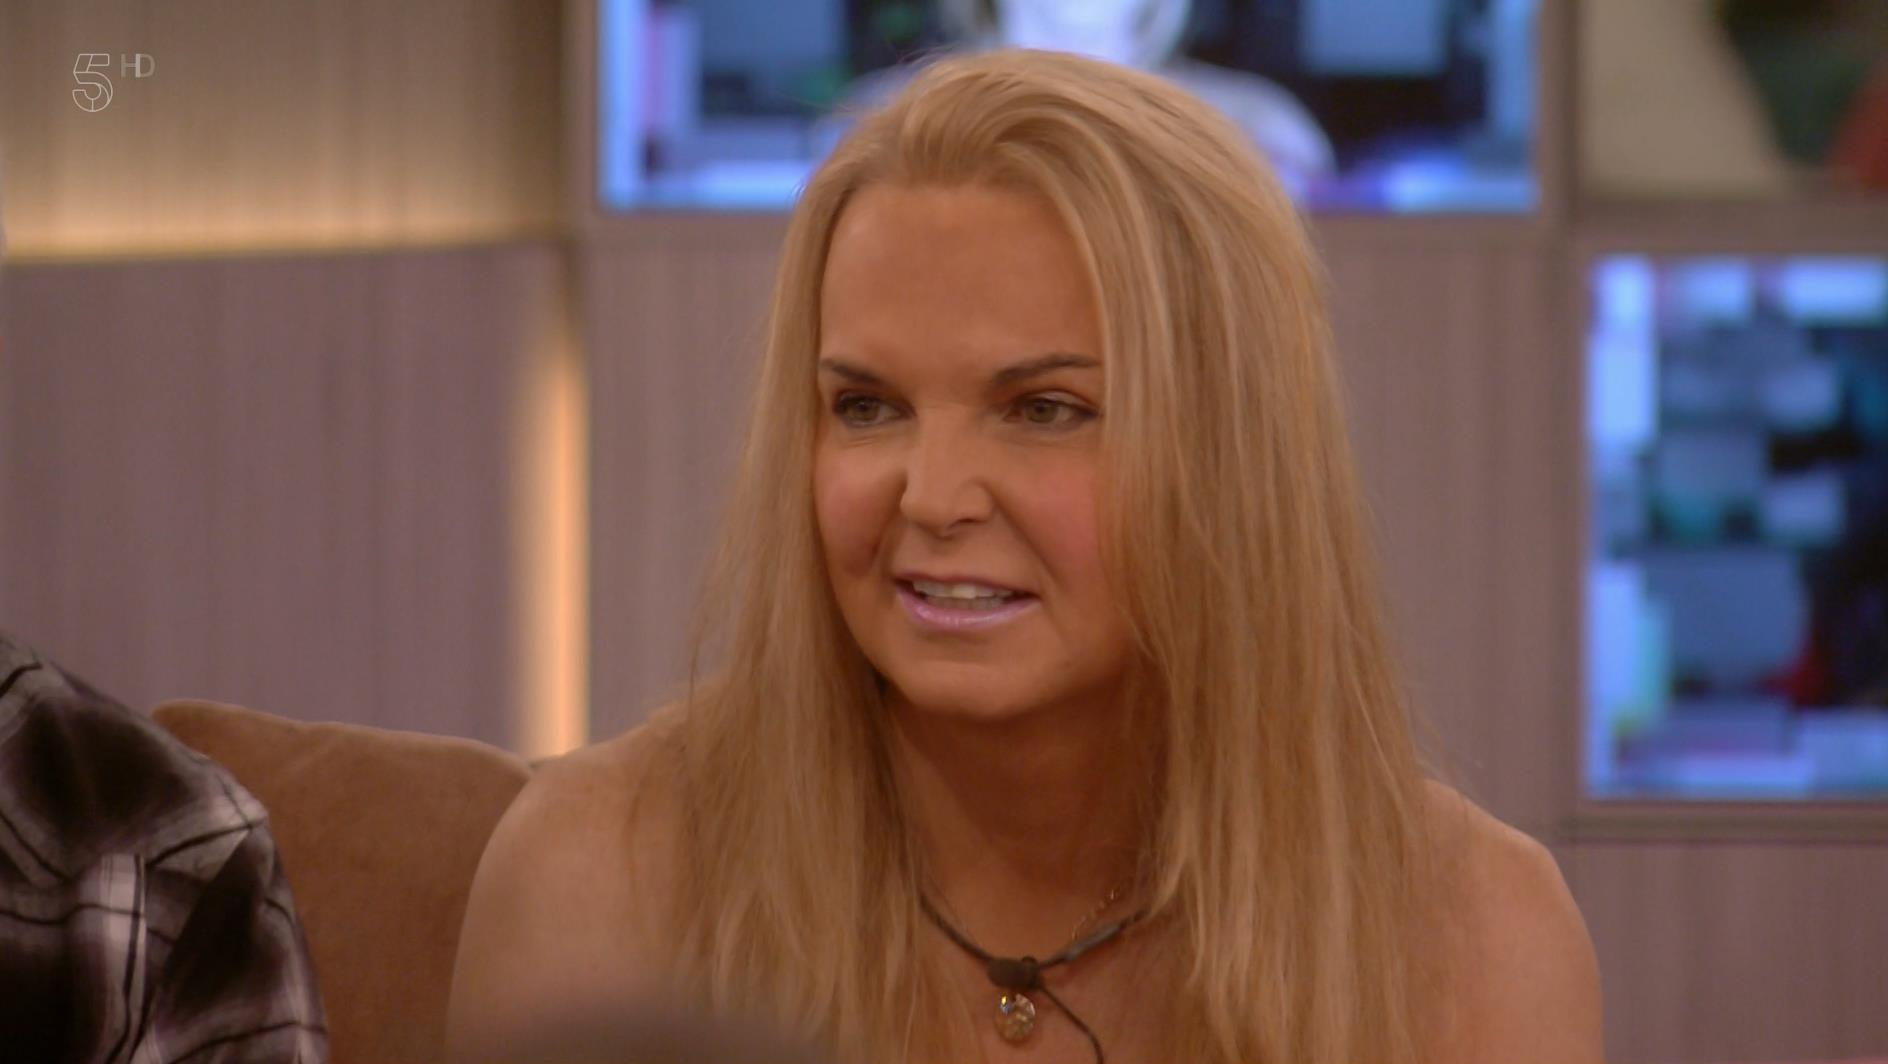 Channel 5 - Celebrity Big Brother - India Willoughby (1)